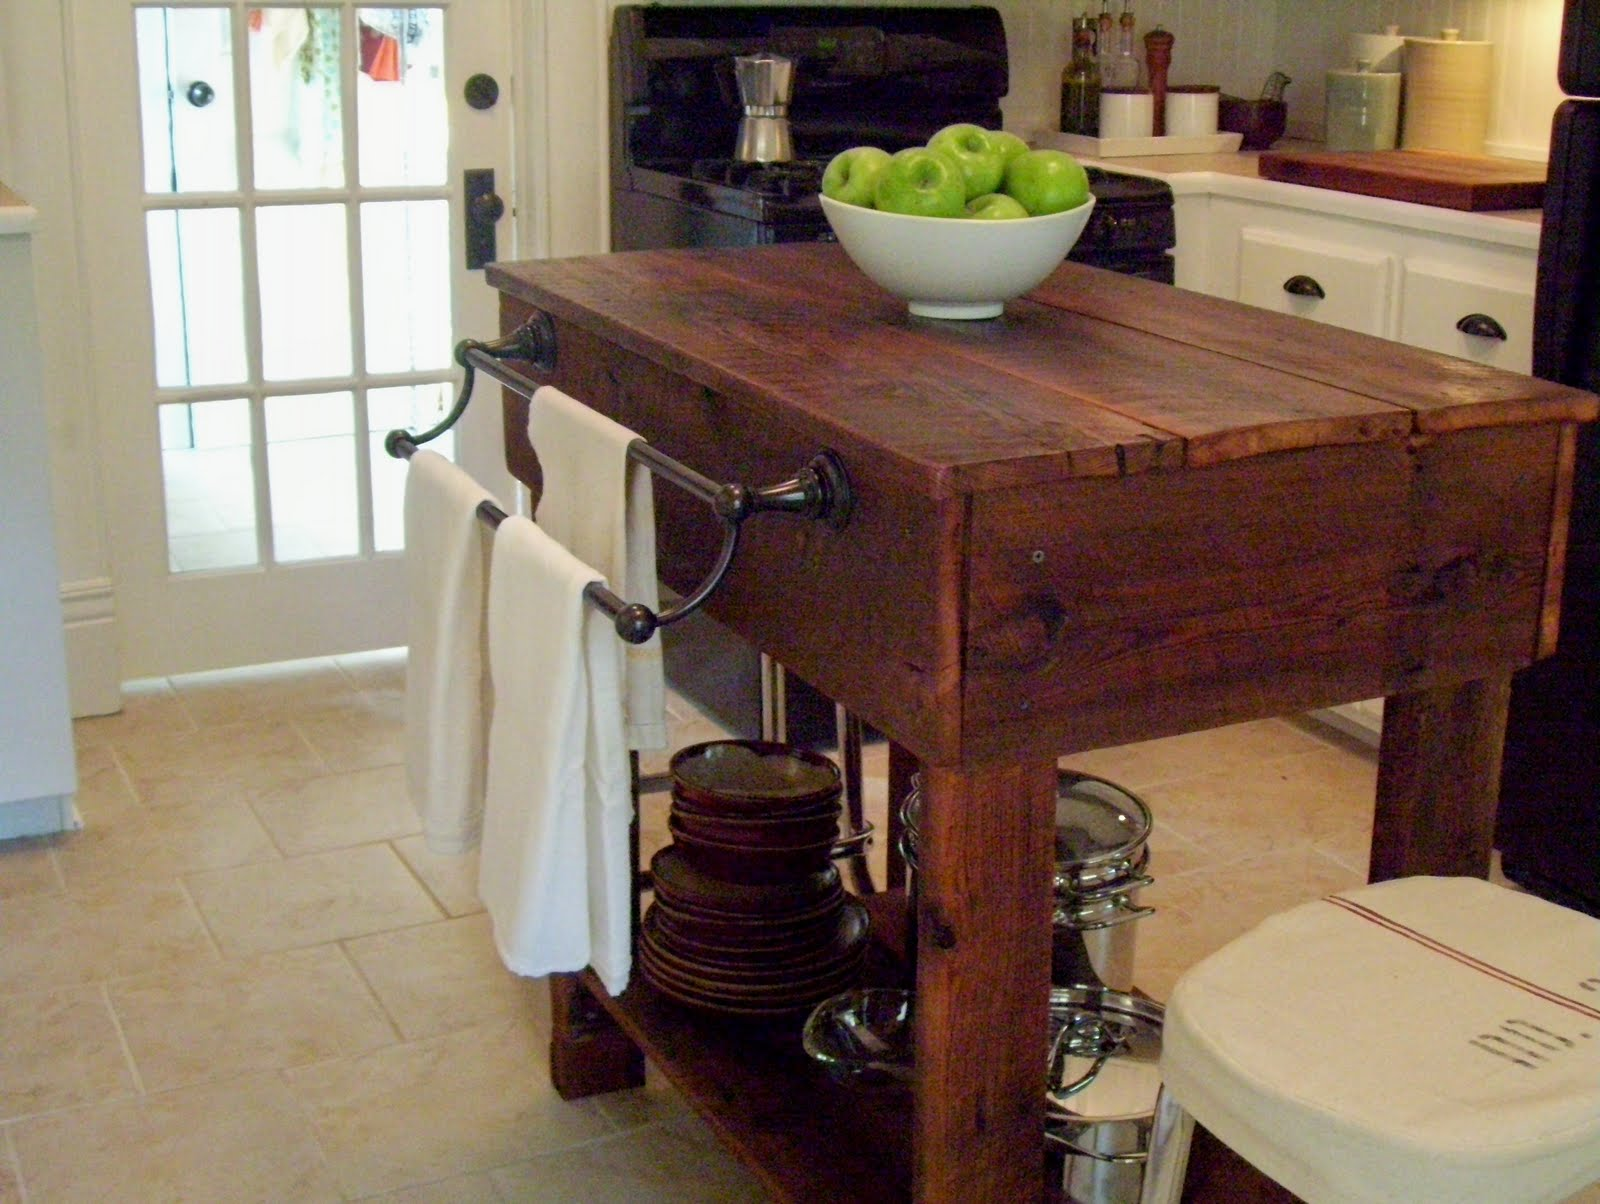 Round oak kitchen table and chairs photo - 3